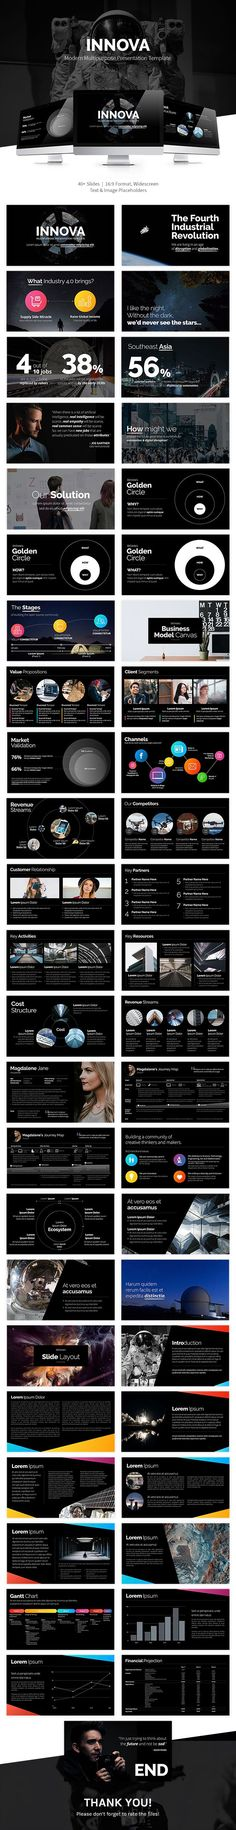 Innova Powerpoint Presentation Pitch Deck — Powerpoint PPT #Golden Circle #data • Available here ➝ https://graphicriver.net/item/innova-powerpoint-presentation-pitch-deck/20652184?ref=pxcr